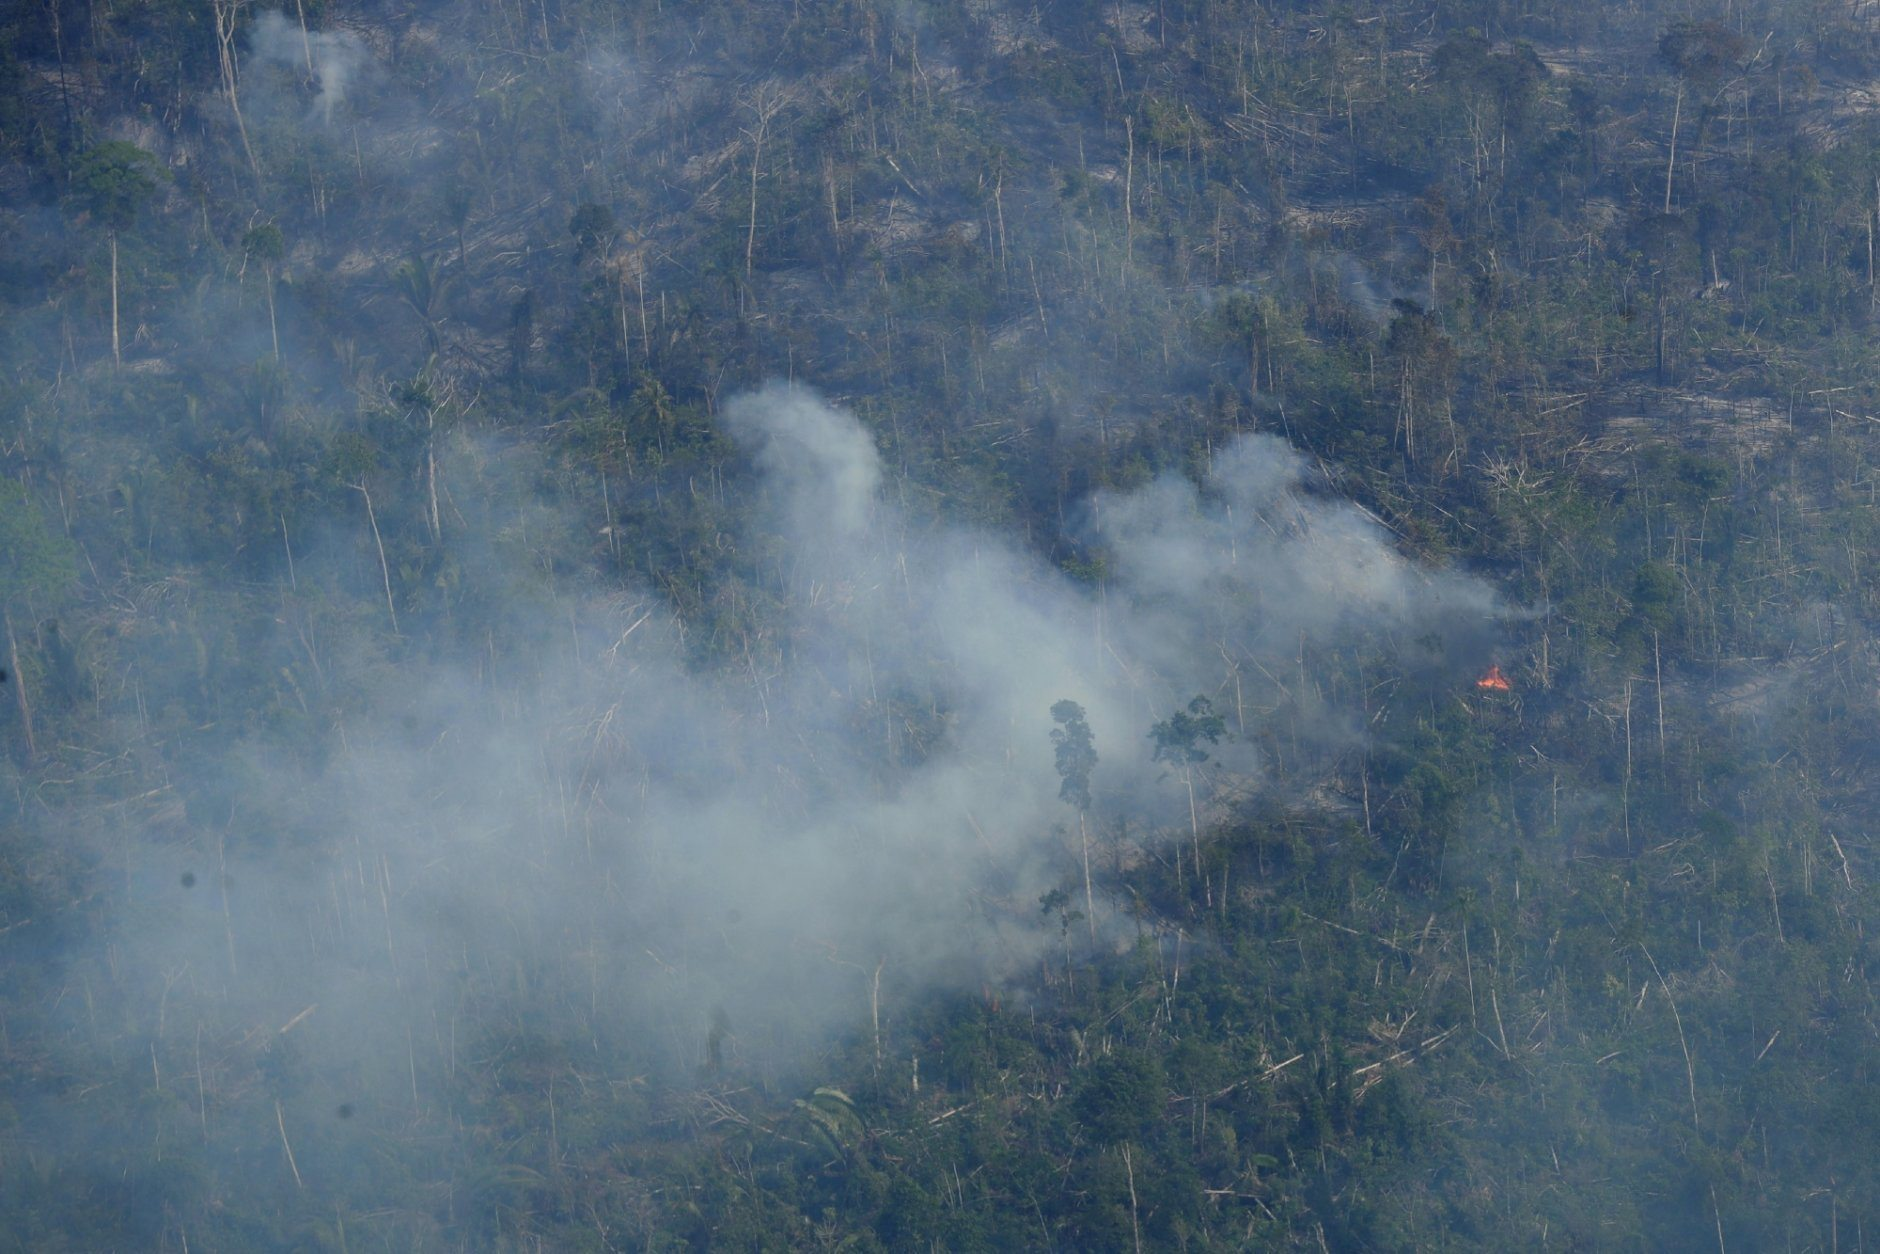 Fire consumes an area near Jaci Parana, state of Rondonia, Brazil, Saturday, Aug. 24, 2019. Brazil says military aircraft and 44,000 troops will be available to fight fires sweeping through parts of the Amazon region. The defense and environment ministers have outlined plans to battle the blazes that have prompted an international outcry as well as demonstrations in Brazil against President Jair Bolsonaro's handling of the environmental crisis. (AP Photo/Eraldo Peres)